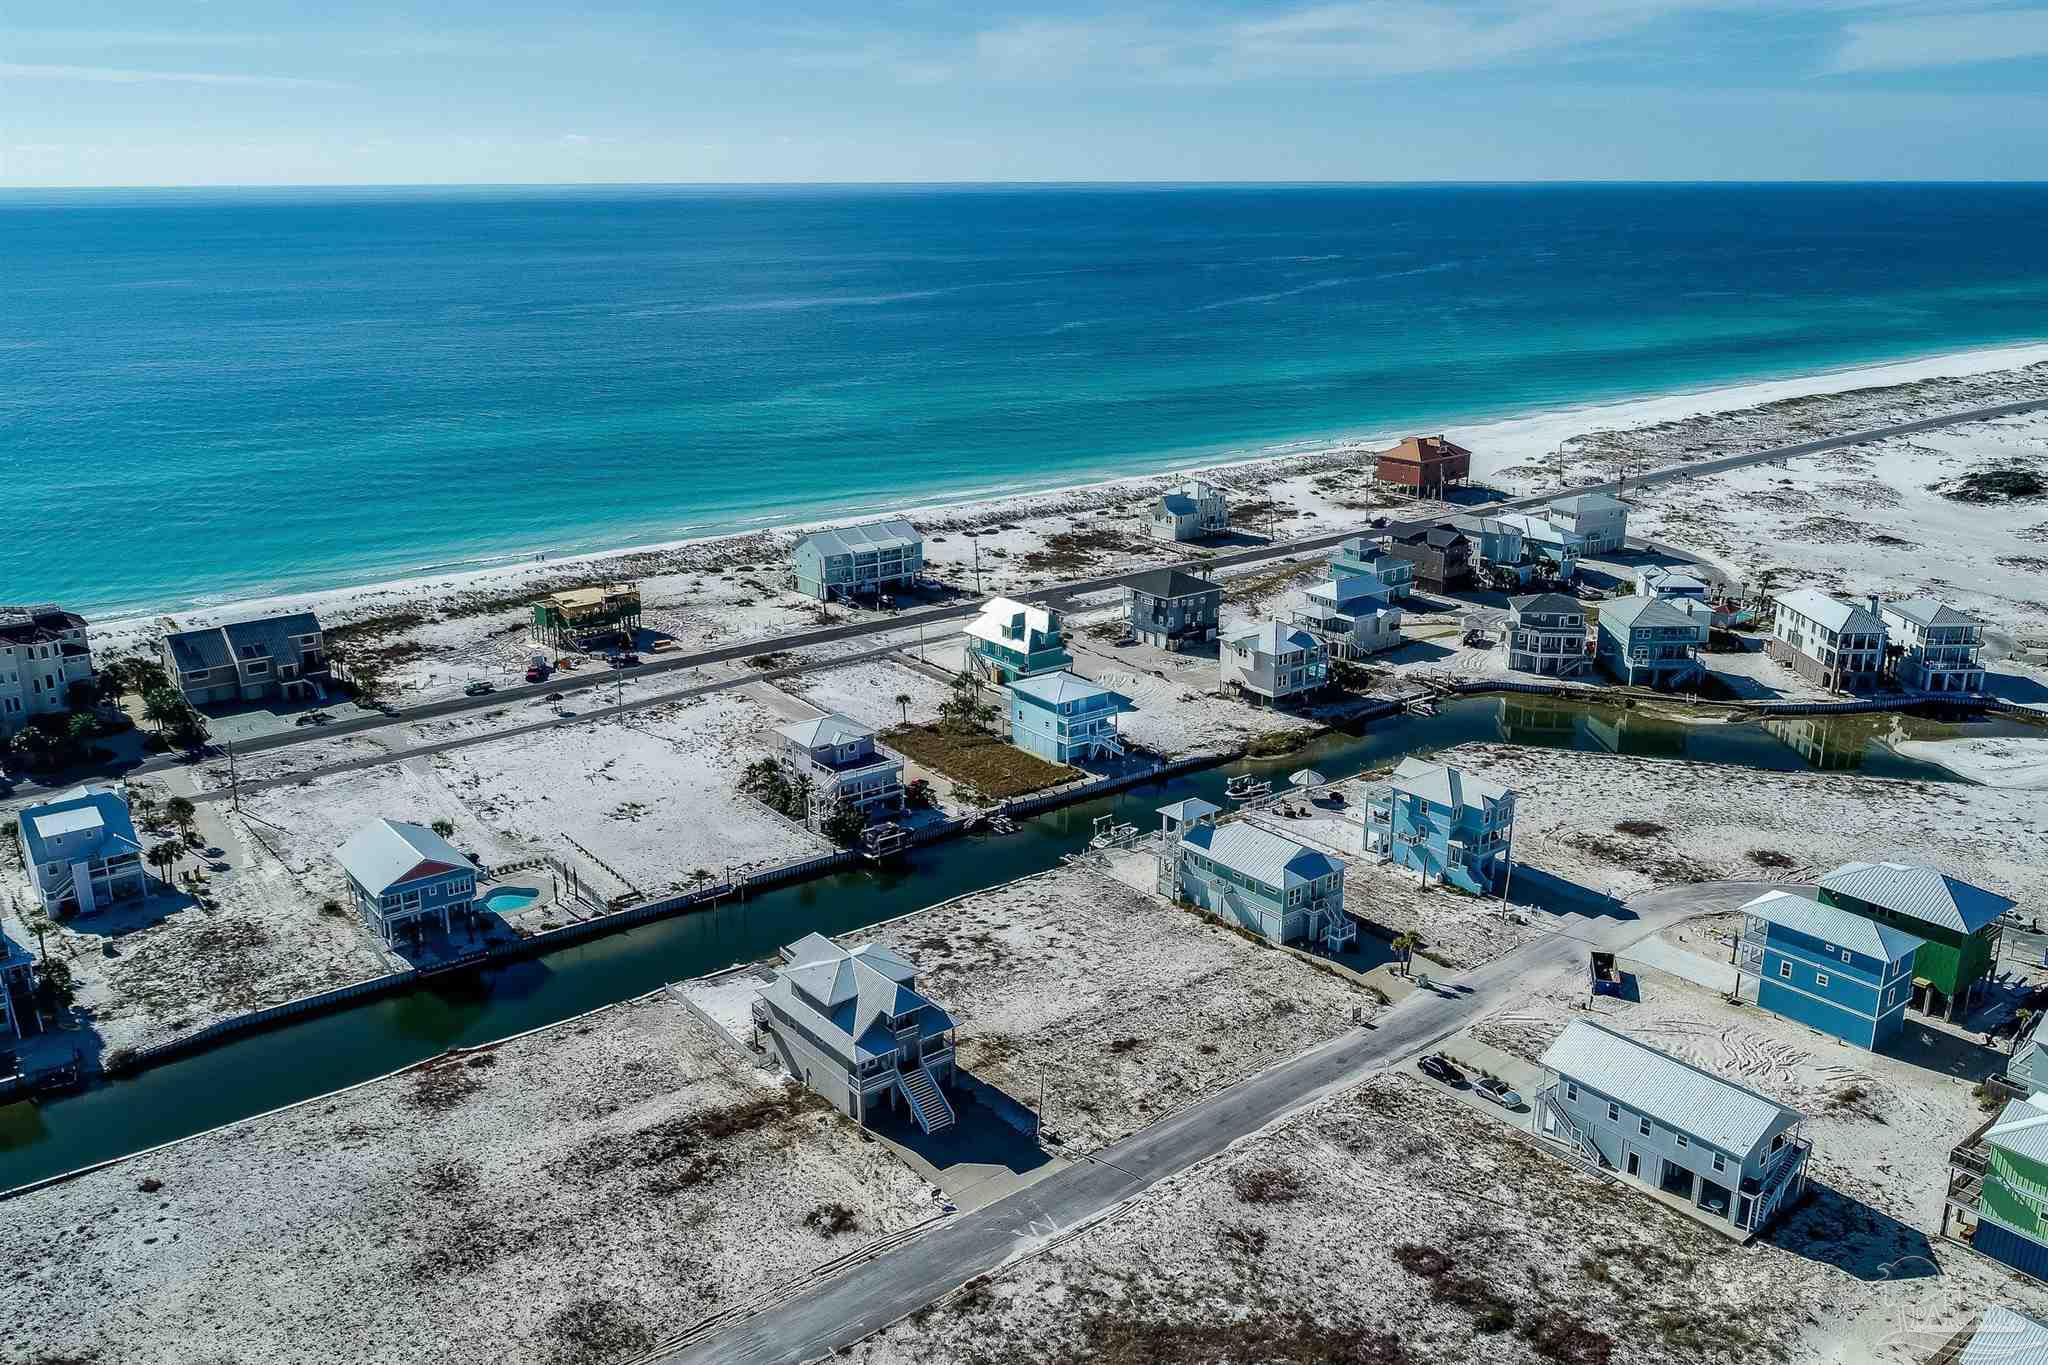 """View Builder's Model Home at 7407 Grand Navarre. 7395 Gulf Blvd is a To Be Built home. Build """"the ultimate"""" beach home that sleeps 15! To be built with 5 bedrooms, 5 1/2 baths, 3-stop elevator and wide balconies.  Inviting beach home to be built with 180mph fortified construction, upgraded with many designer features that include high 9-ft and 10-ft ceilings with an abundance of recessed lighting, wood plank porcelain tile throughout, custom wood work, double-step cottage ceiling, crown molding throughout, custom crown trim above all windows and doors, framed windows, tall eight foot doors, 3'' plantation blinds throughout, tall baseboards, hardwood stair treads and handrails, and brushed nickel hardware.  Well designed open concept floor plan has large family room that opens to the dining area,  and kitchen.  Both areas have tall extra wide sliding doors bringing in natural light and open to the wide balcony.  The cook will enjoy the spacious kitchen with tall solid wood soft close cabinets, under cabinet lighting, decorative glass fronted cabinets, upgraded granite and stainless steel appliances that include the refrigerator.  The first living area has a powder room, a laundry room that includes washer and dryer and two guest bedrooms, each with their own bath.  The second living level has a second family room with extra wide sliding glass doors to the balcony, second laundry and two guest bedrooms, each with their own tiled bath.  The spacious master bedroom has room for sitting area, recessed lighting, extra wide sliding glass doors to wide balcony, two walk-in closets and master bath with floor to ceiling tiled custom shower with niche shelves and two vanities.  On the main garage level, there is tandem parking for two or three vehicles, additional parking for a small vehicle or golf cart, and an additional open storage area.  Walk to the Gulf of Mexico, the Santa Rosa Sound and the Gulf Islands National Seashore!"""